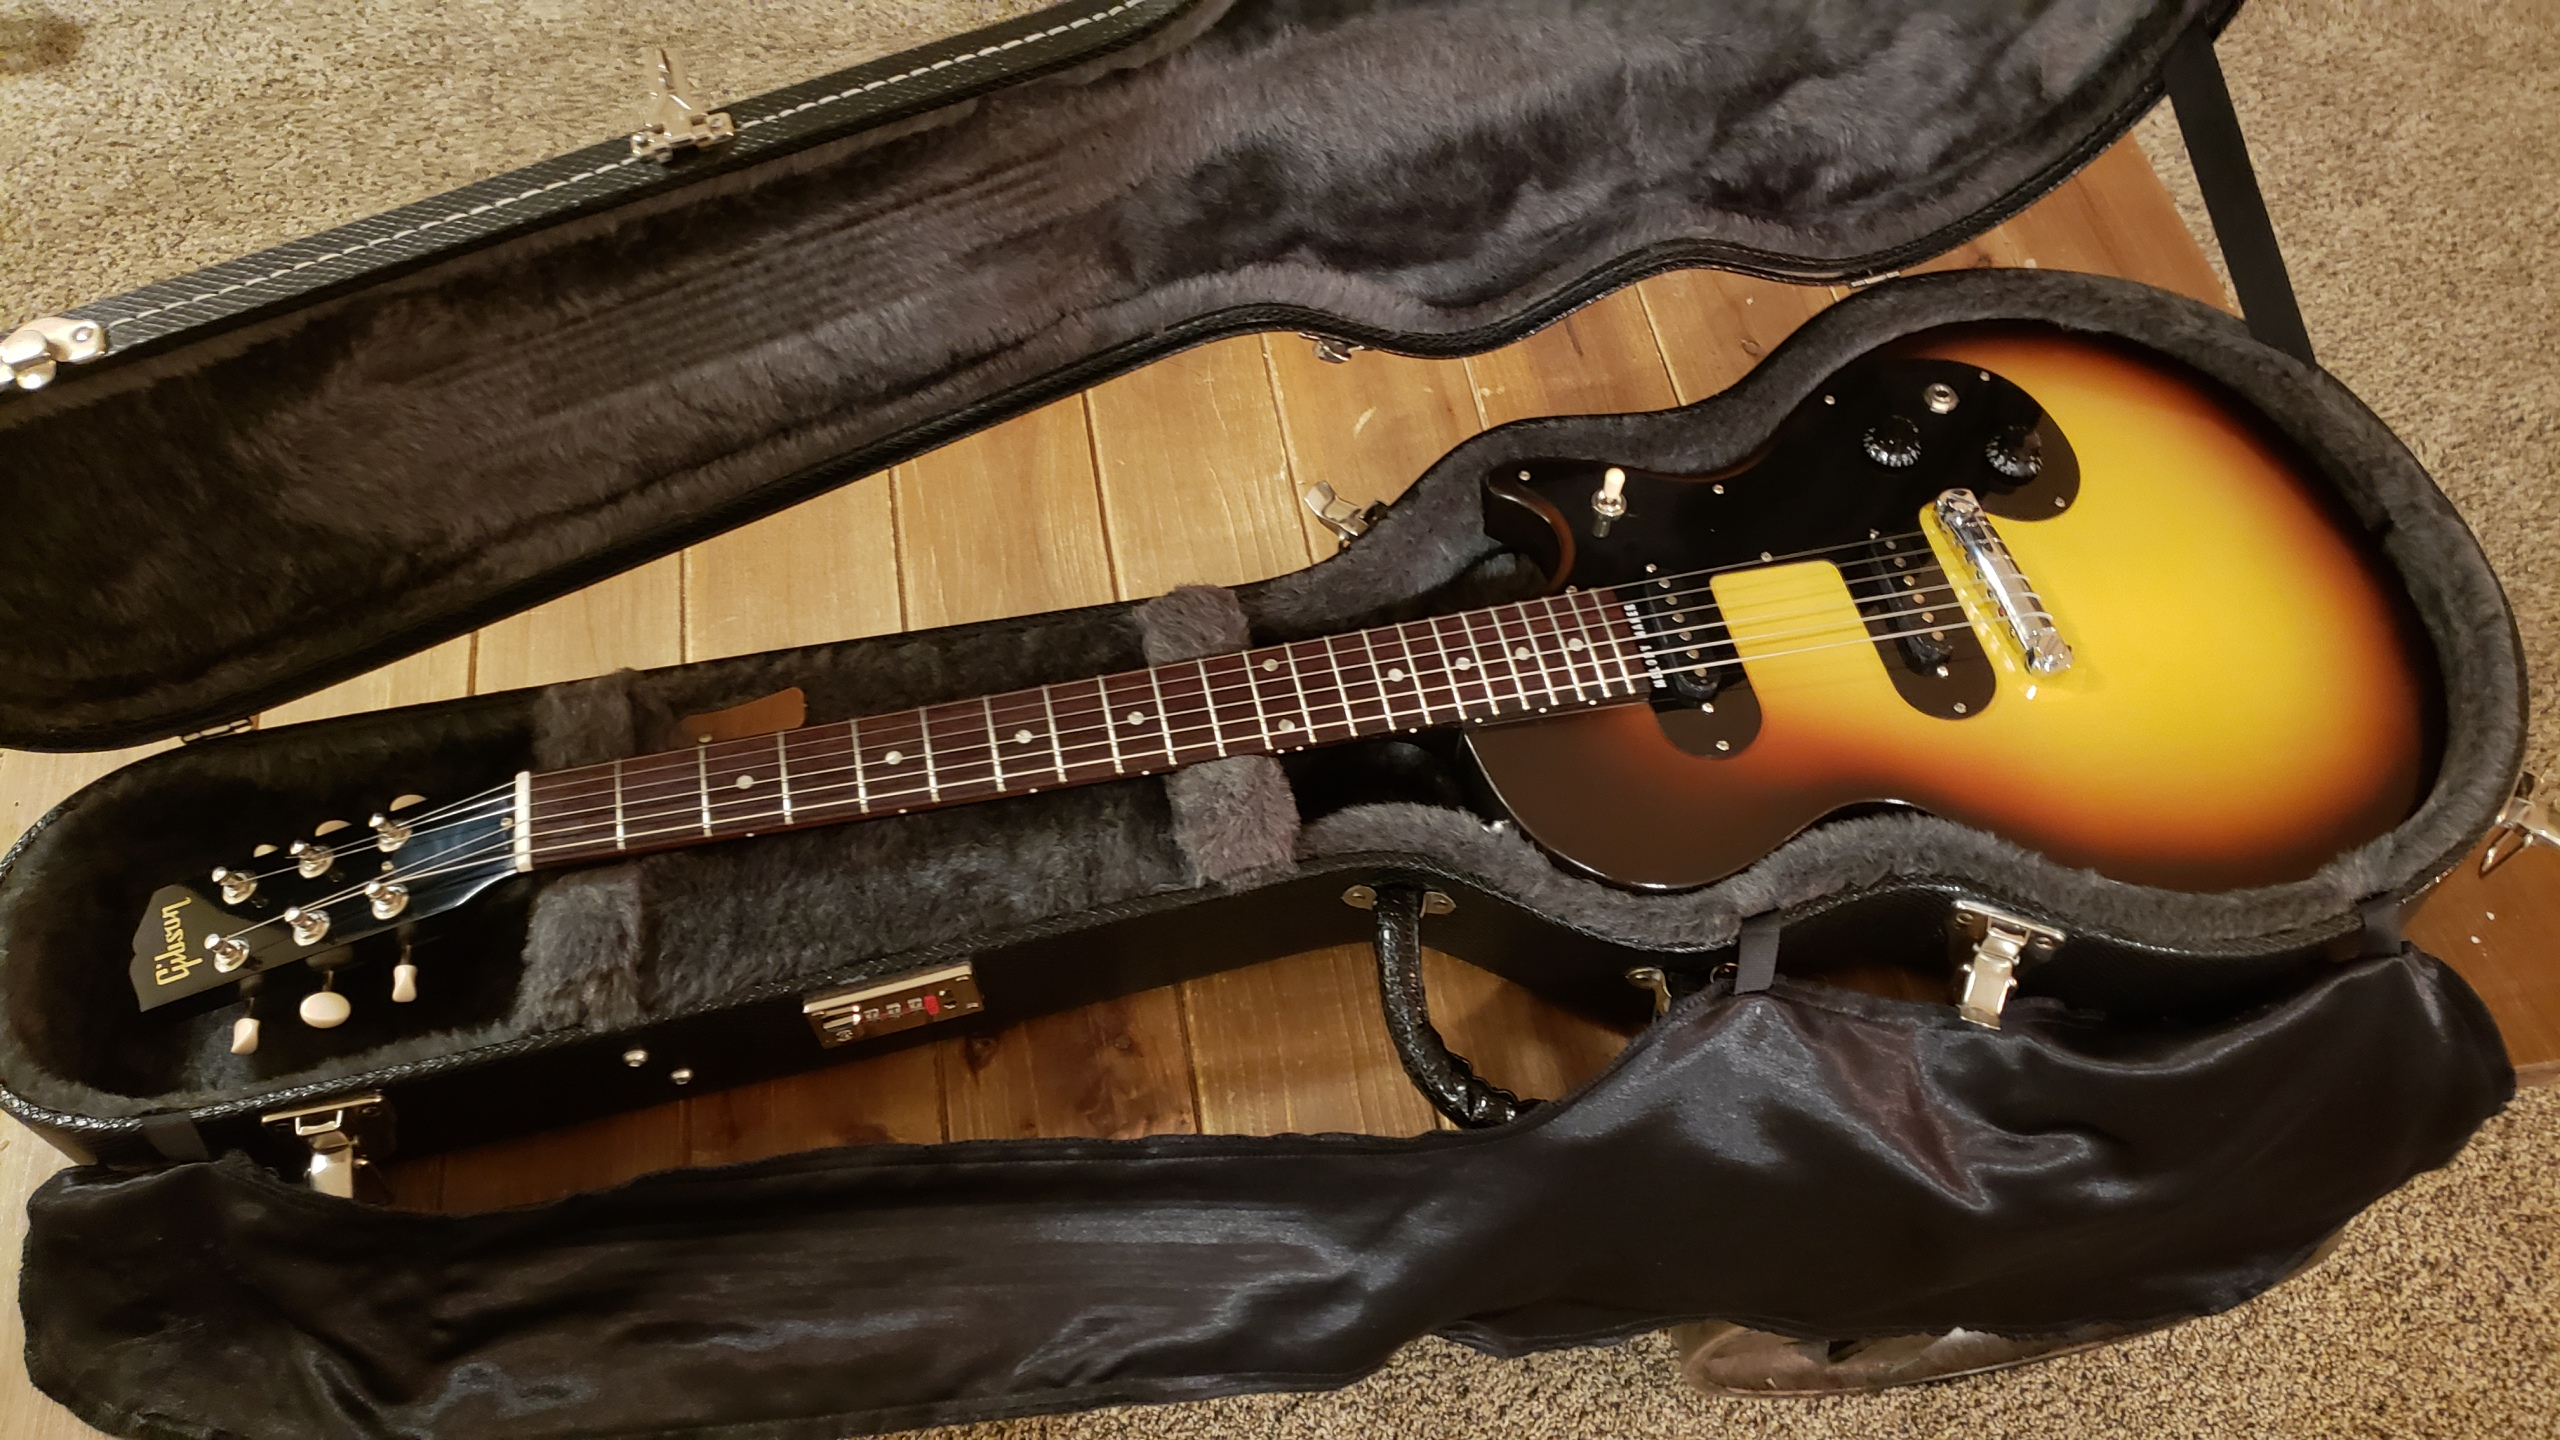 Sold Mint 2007 Gibson Melody Maker 59 Reissue Dual Pickup Matching Mint Gibson Usa Hardcase The Gear Page